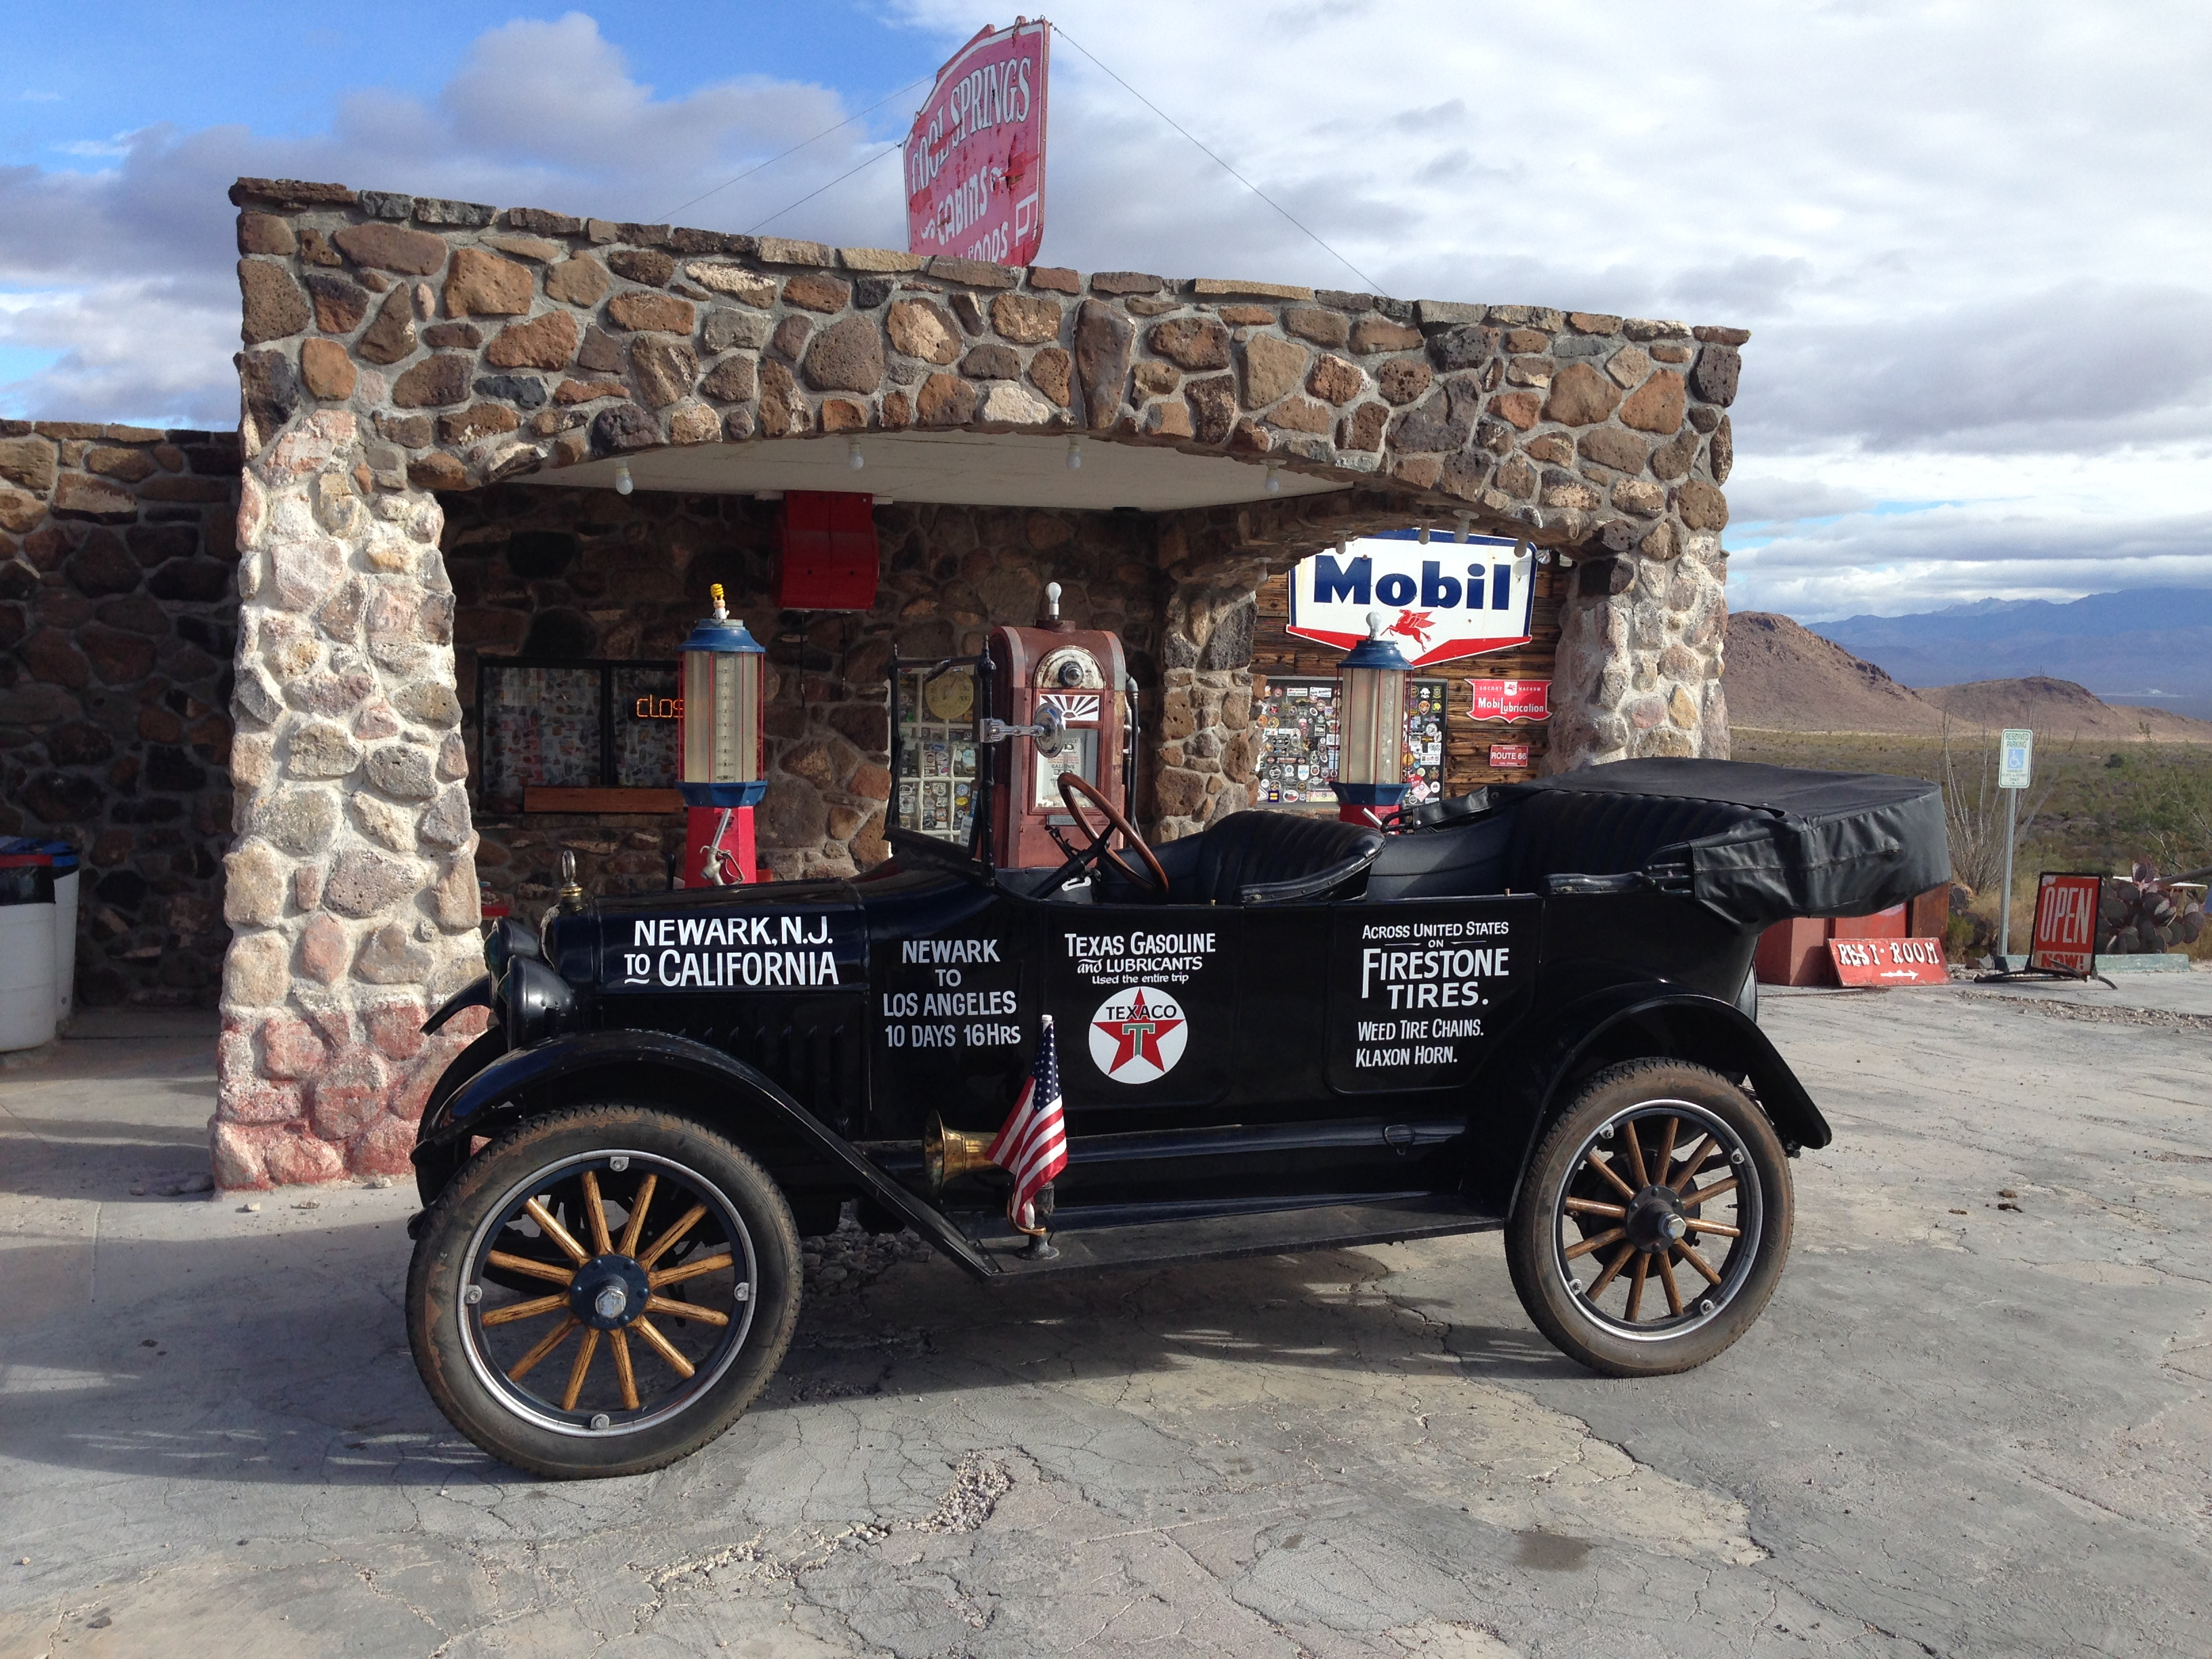 Photo stop at an old station on the Oatman Highway